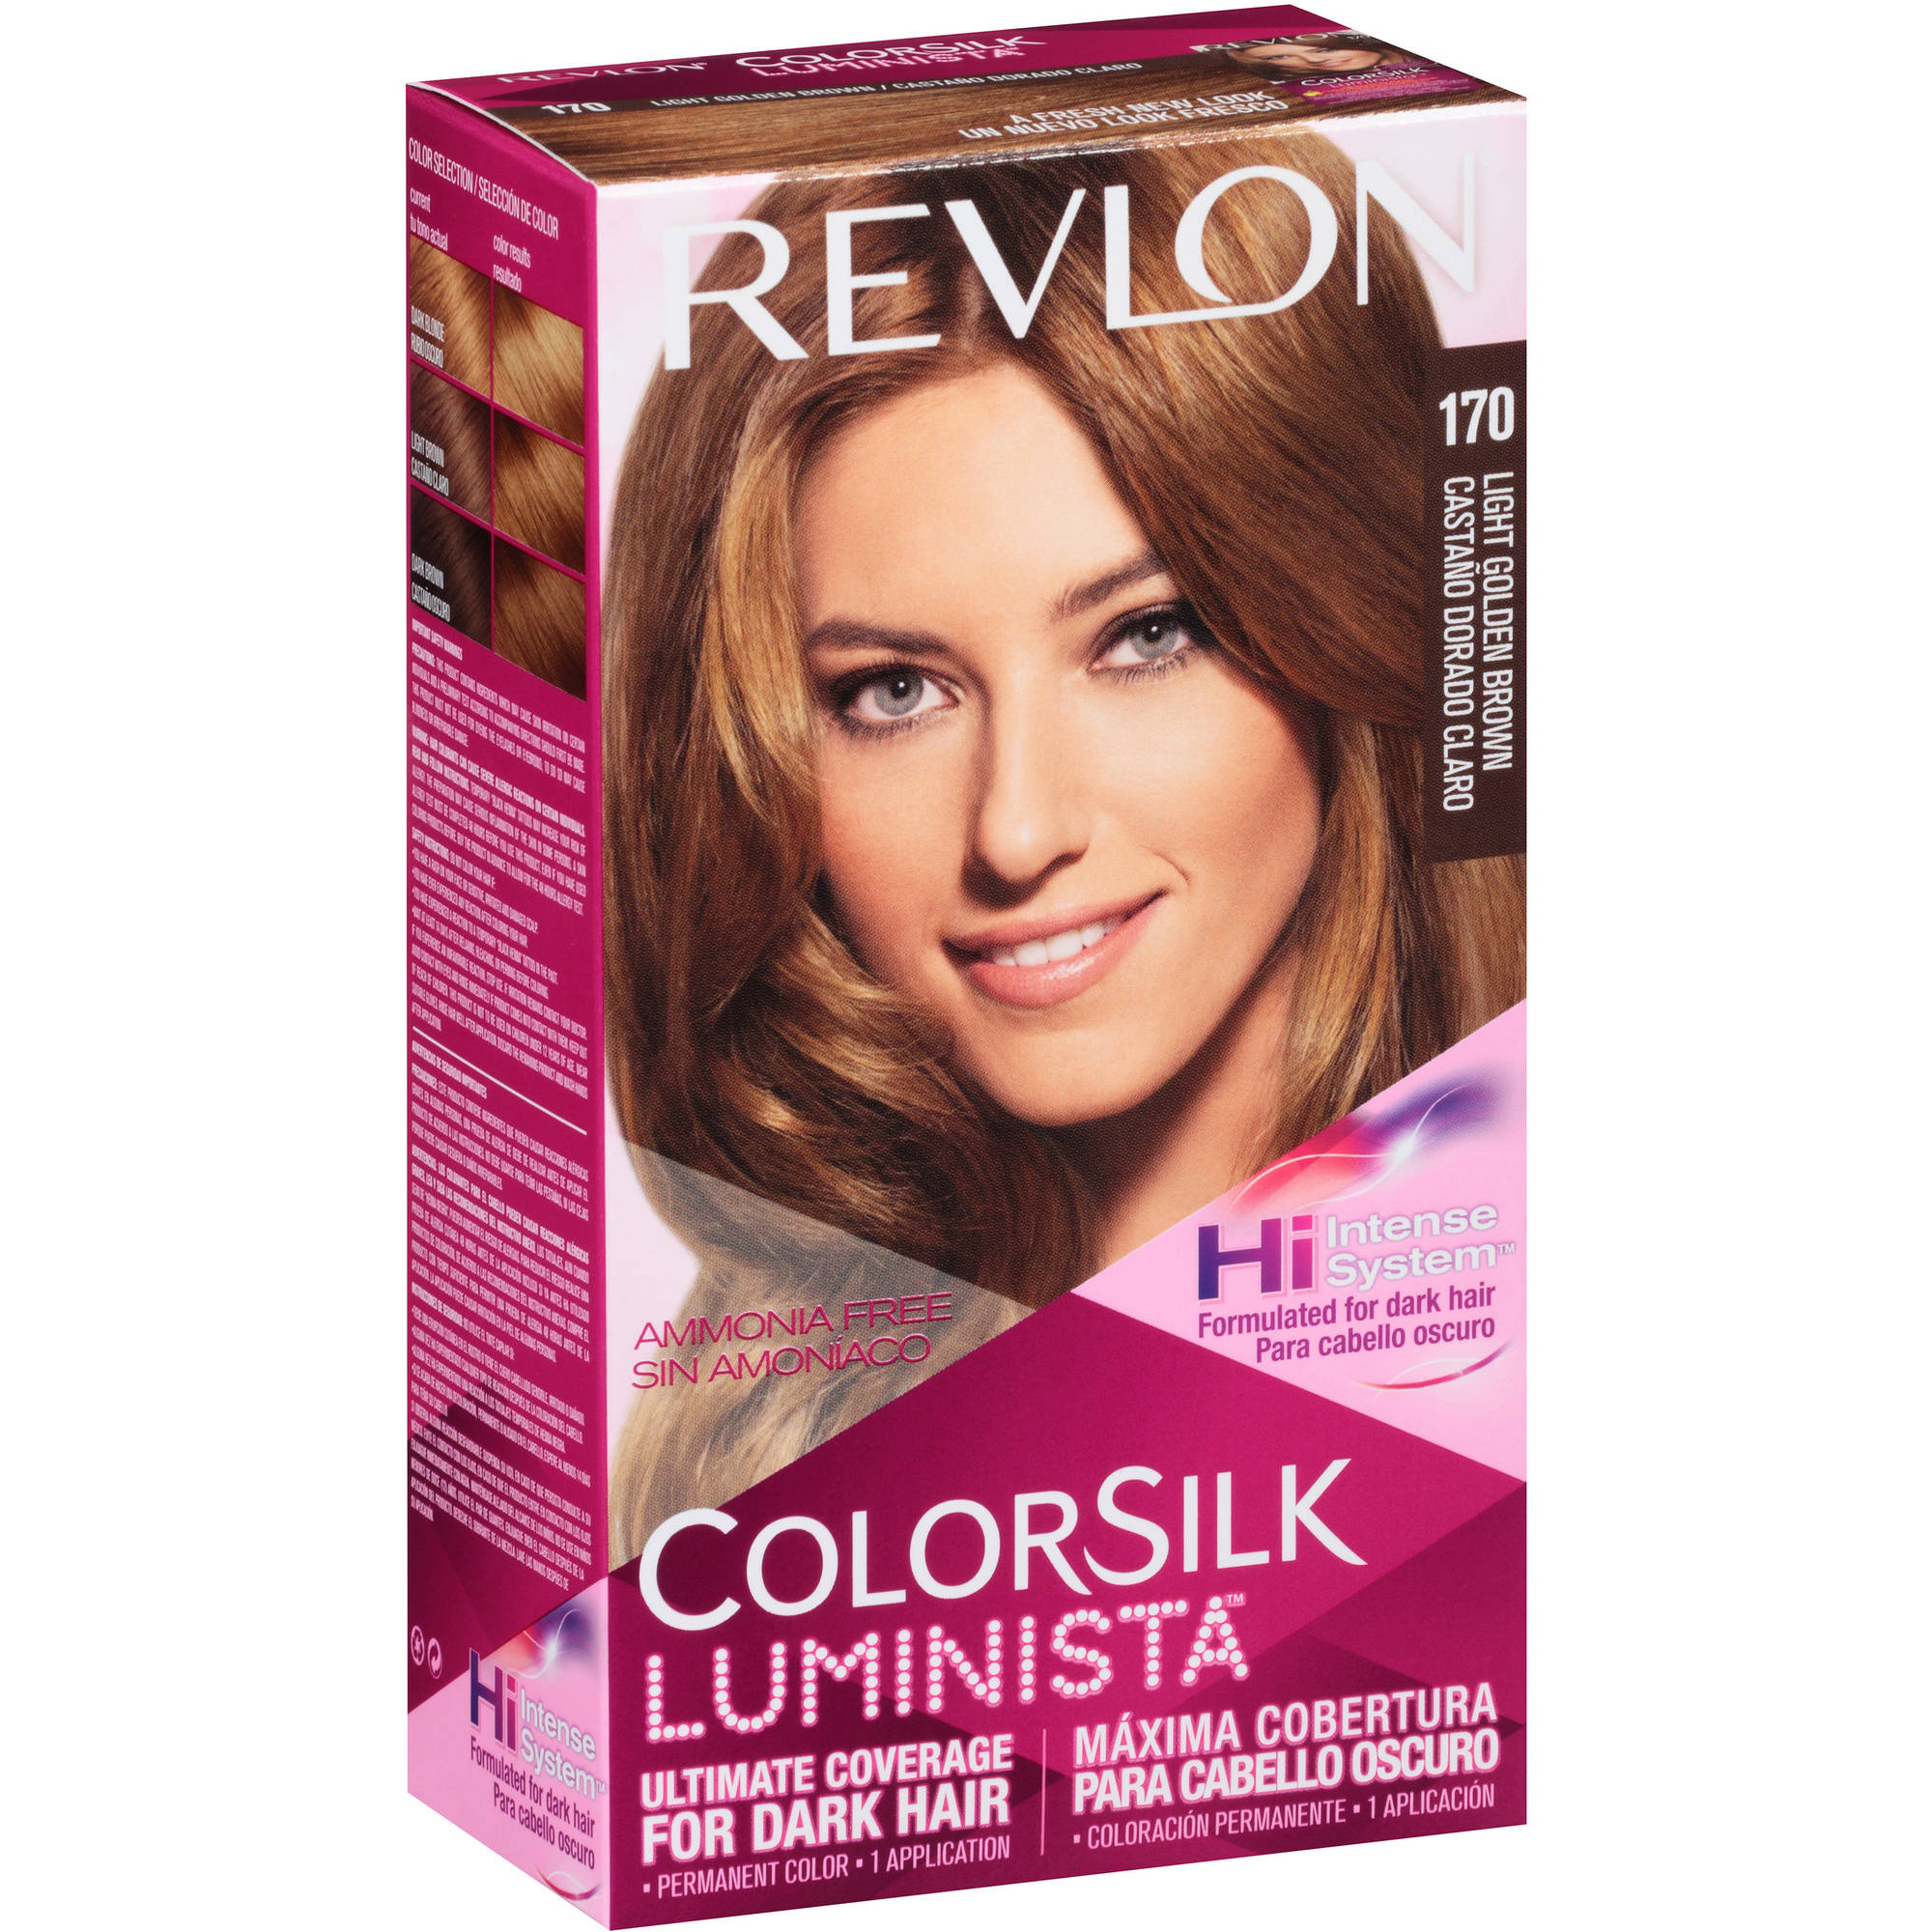 Revlon�� Colorsilk Luminista��� Permanent Liquid Hair Color